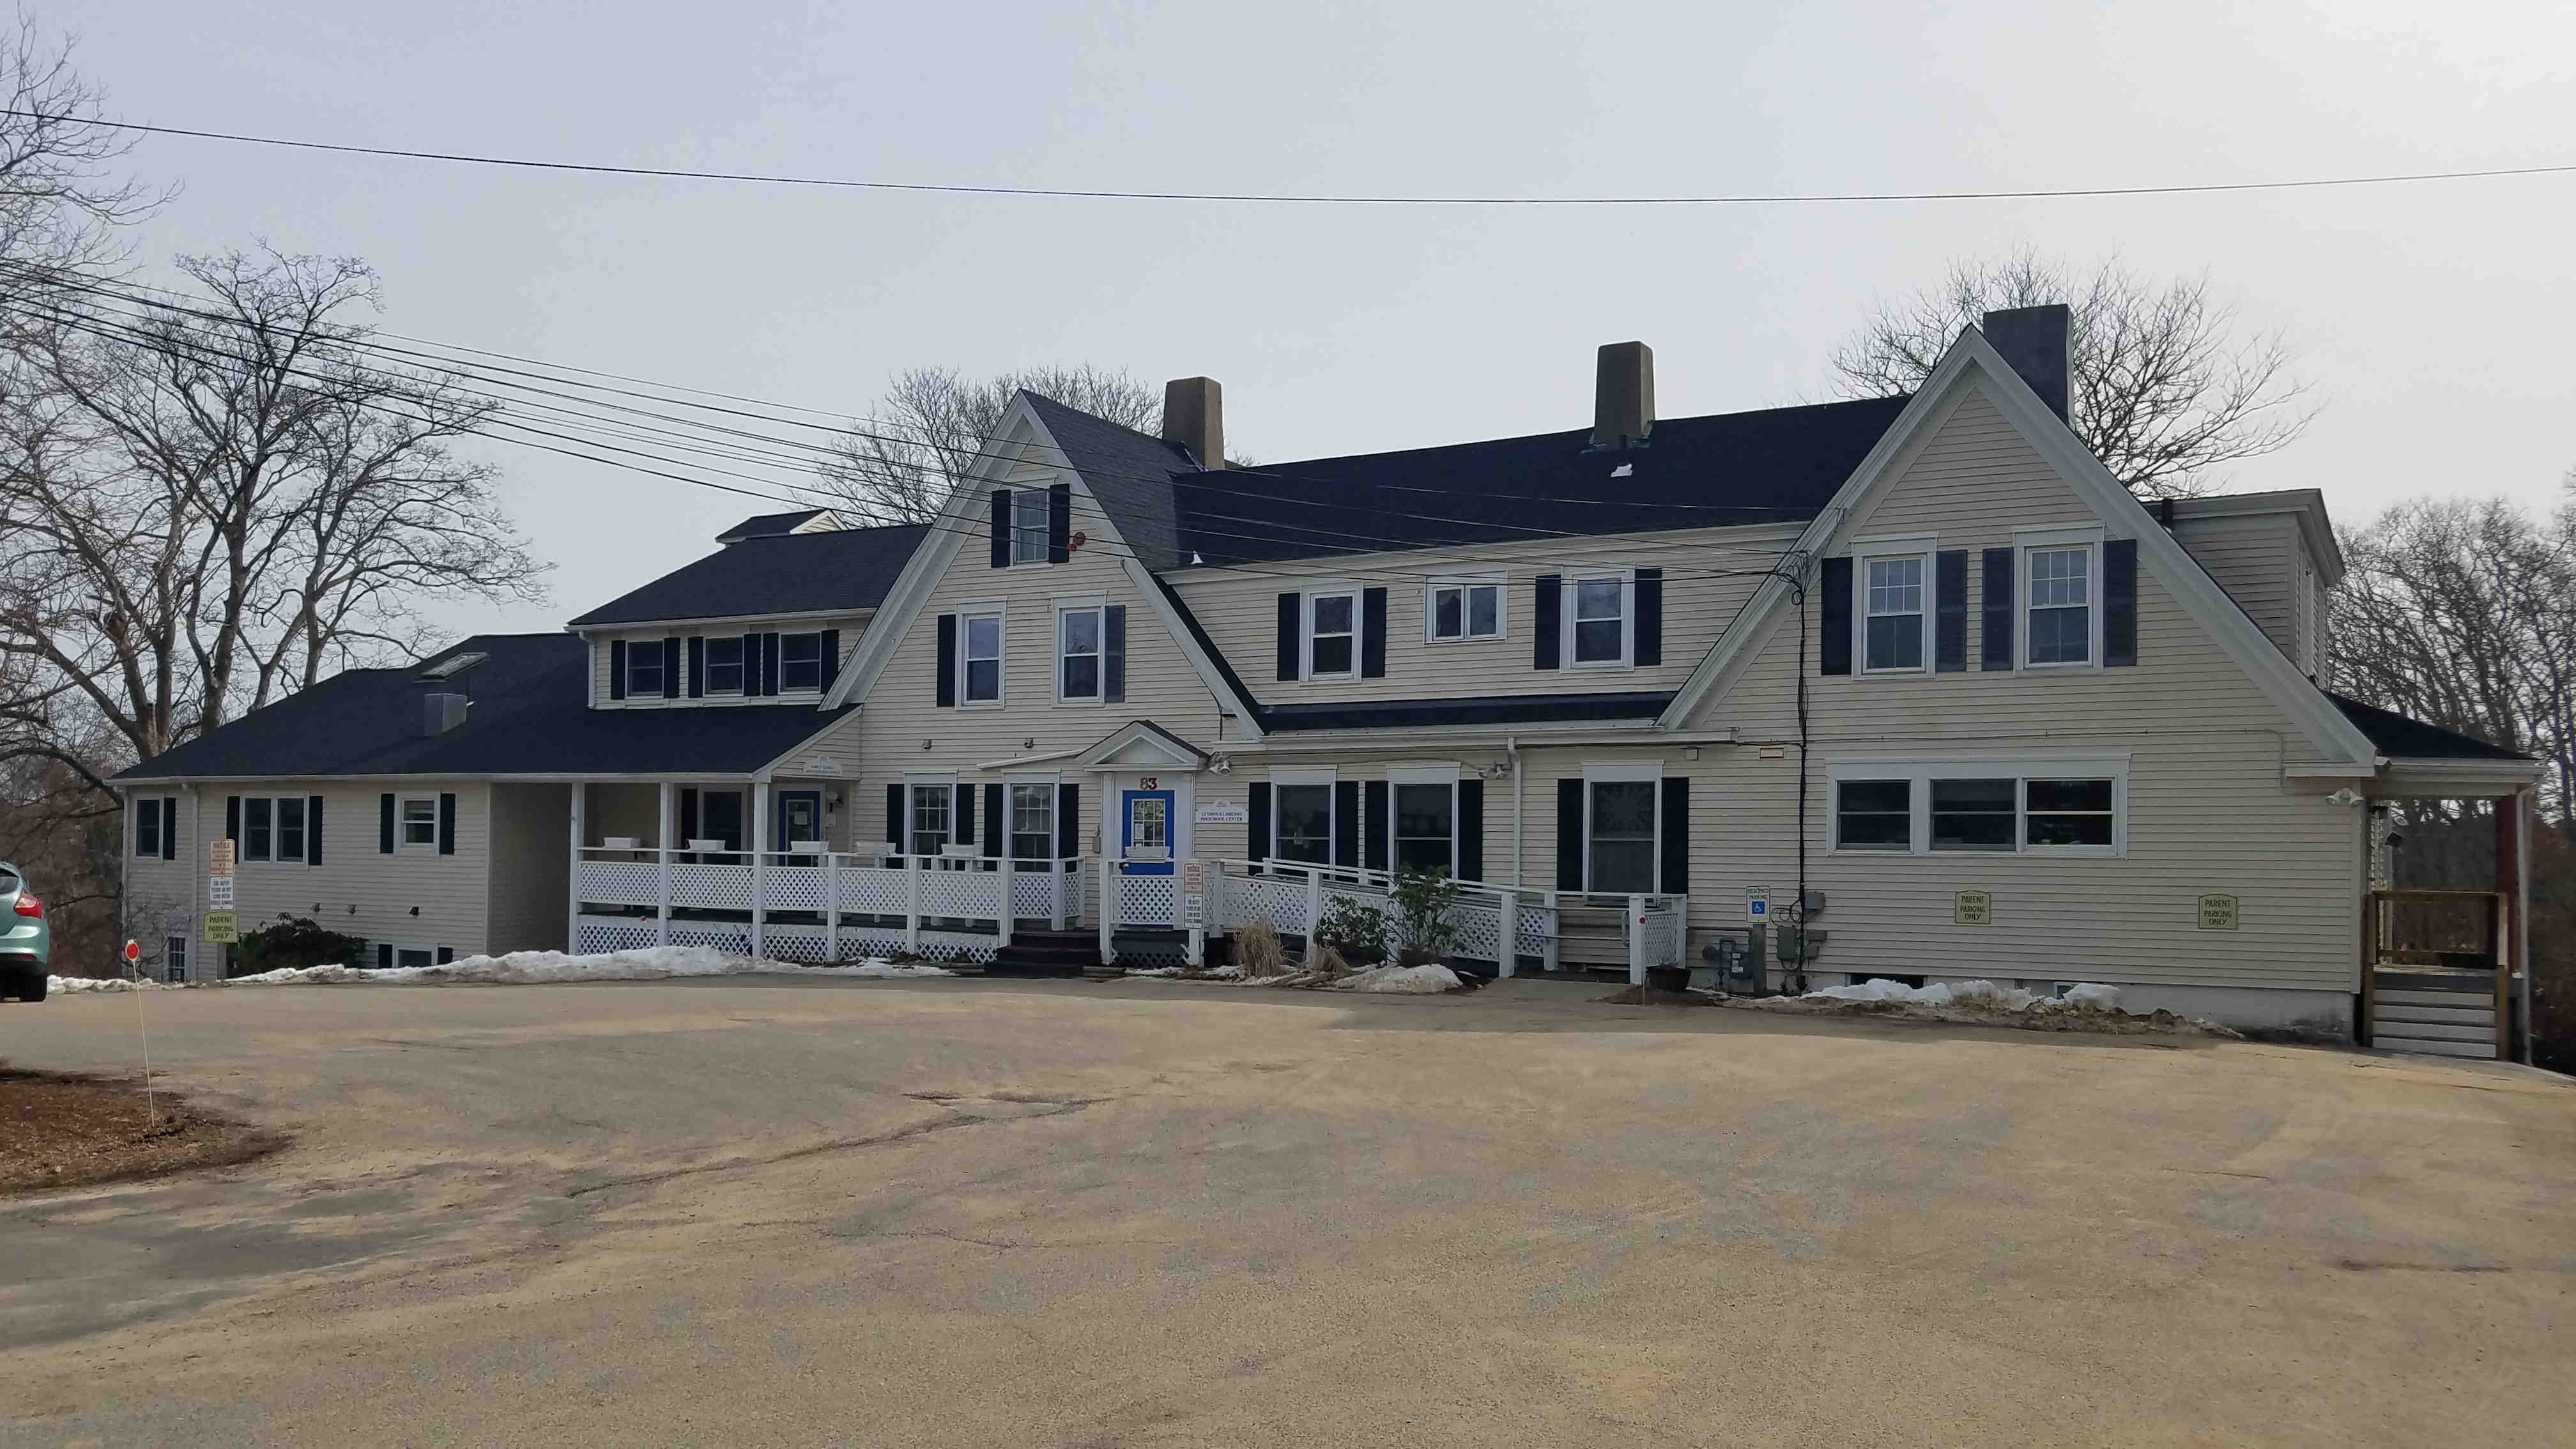 9,871± Sq. Ft. Office Building/Child Care Center on 3.45± Acres in Downtown Hyannis, Cape Cod For Sale